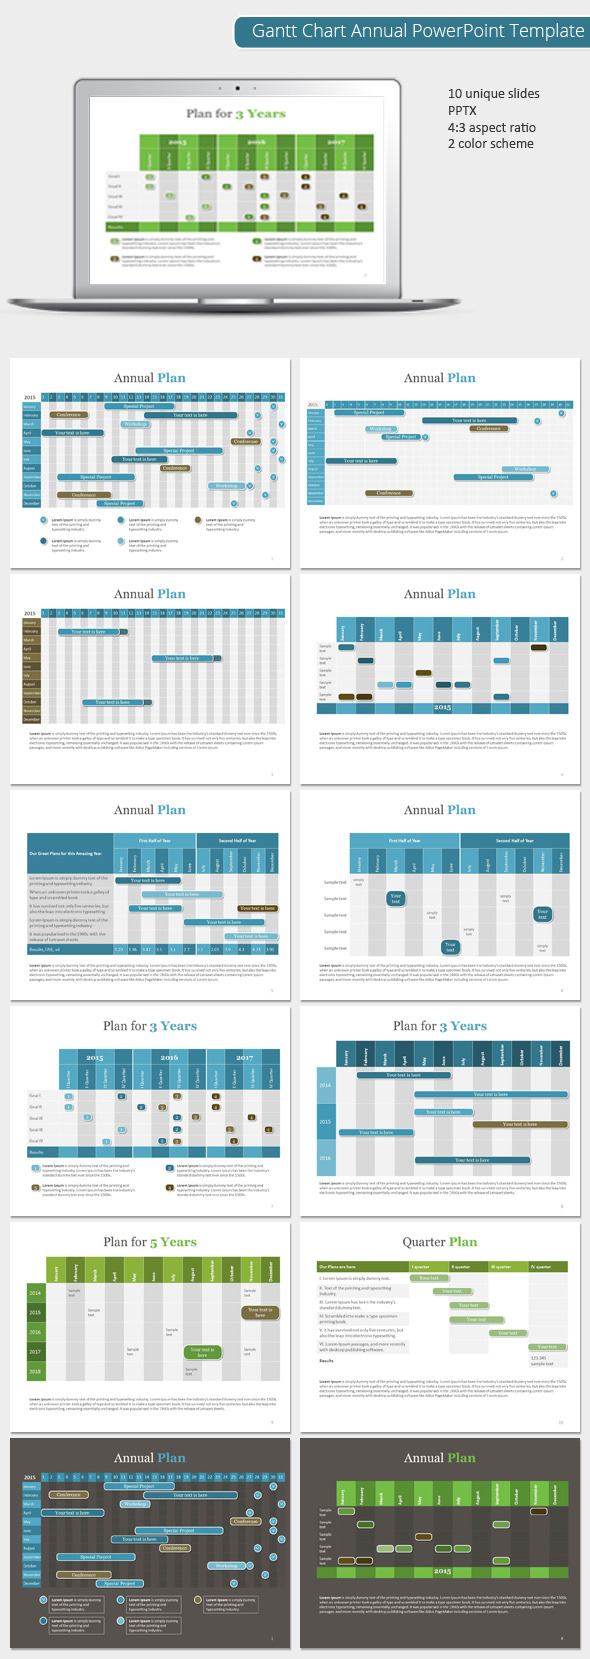 GraphicRiver Gantt Chart Annual PowerPoint Template 9021752